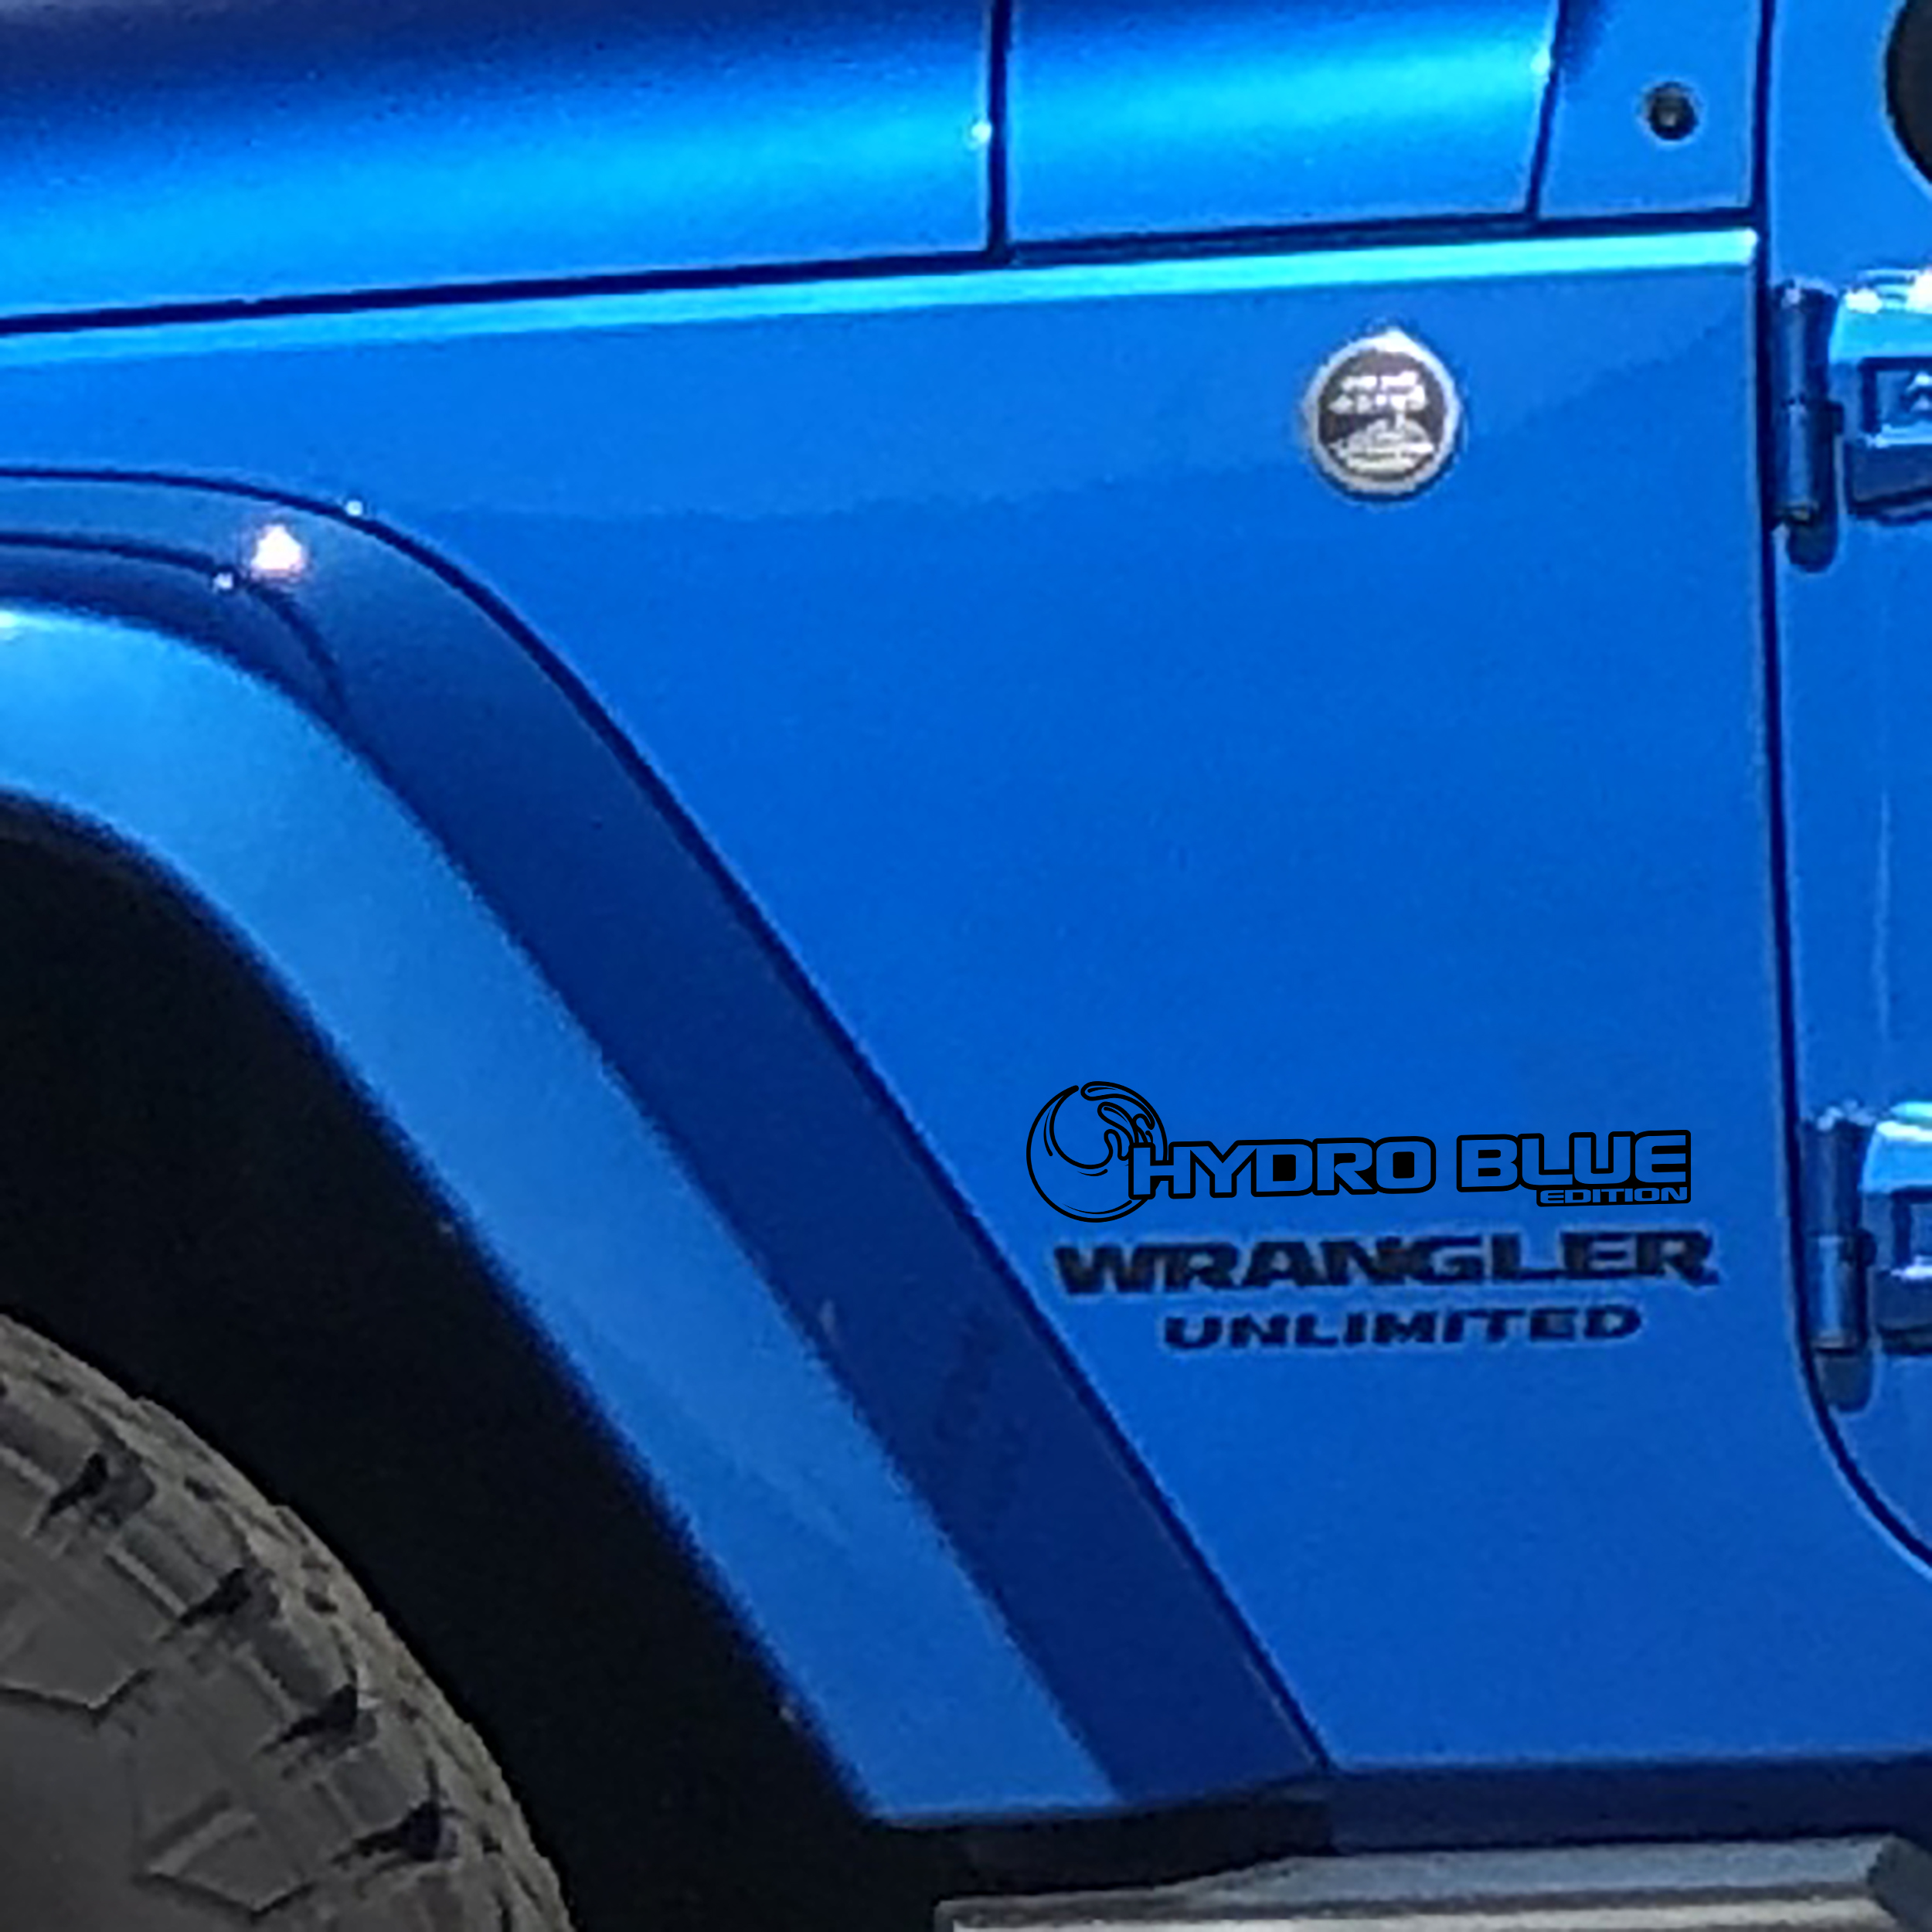 Fender Decals For Wrangler/Gladiator - JL/JT Hydro Blue Edition Decal (Pair)